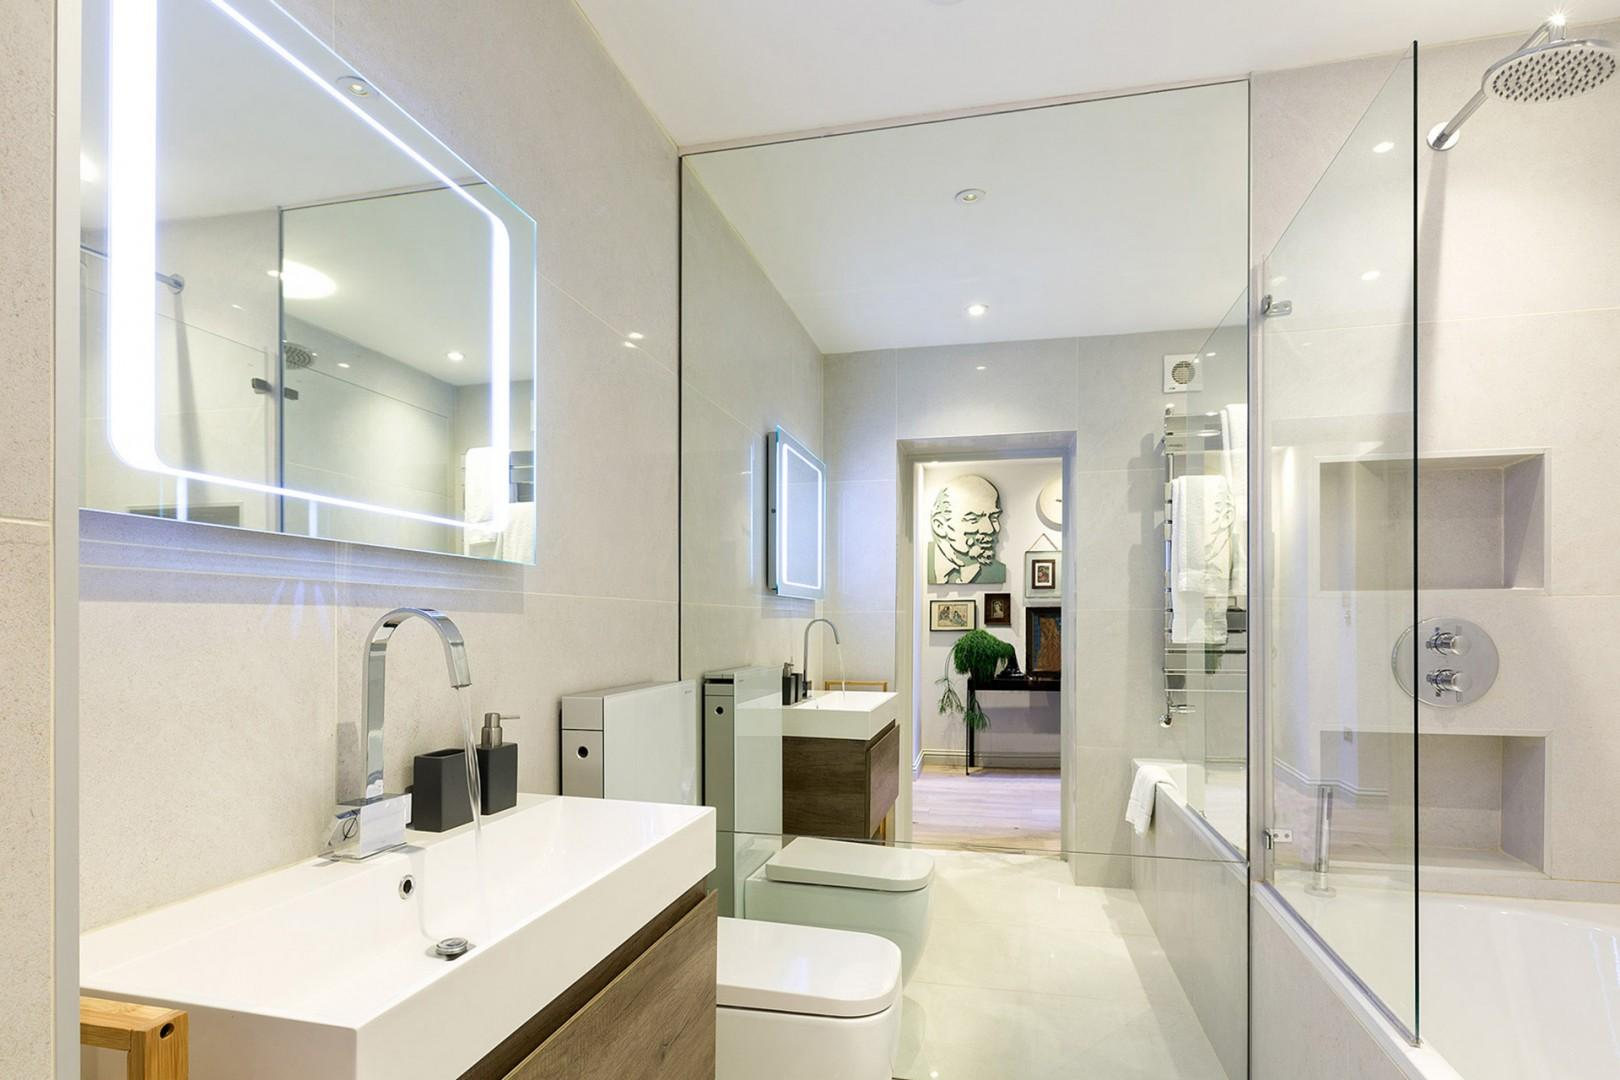 Touch-activated vanity lights in bathroom 1